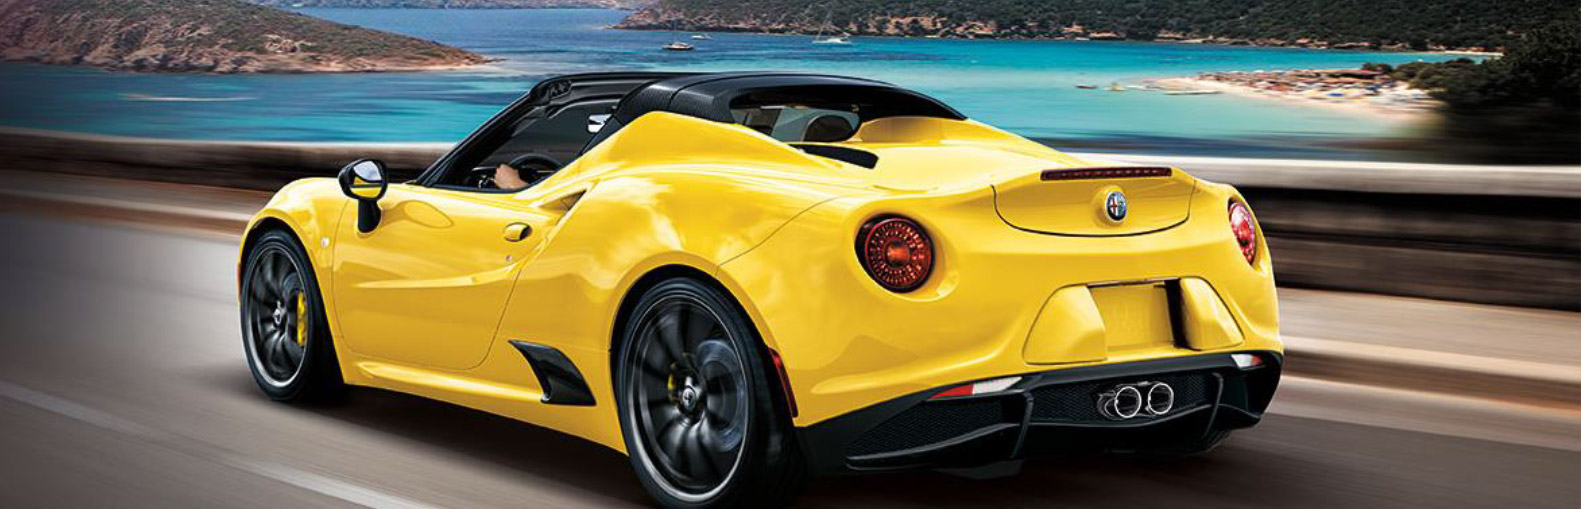 Alfa Romeo's 4C Spider - the lightest of the modern luxury sports cars